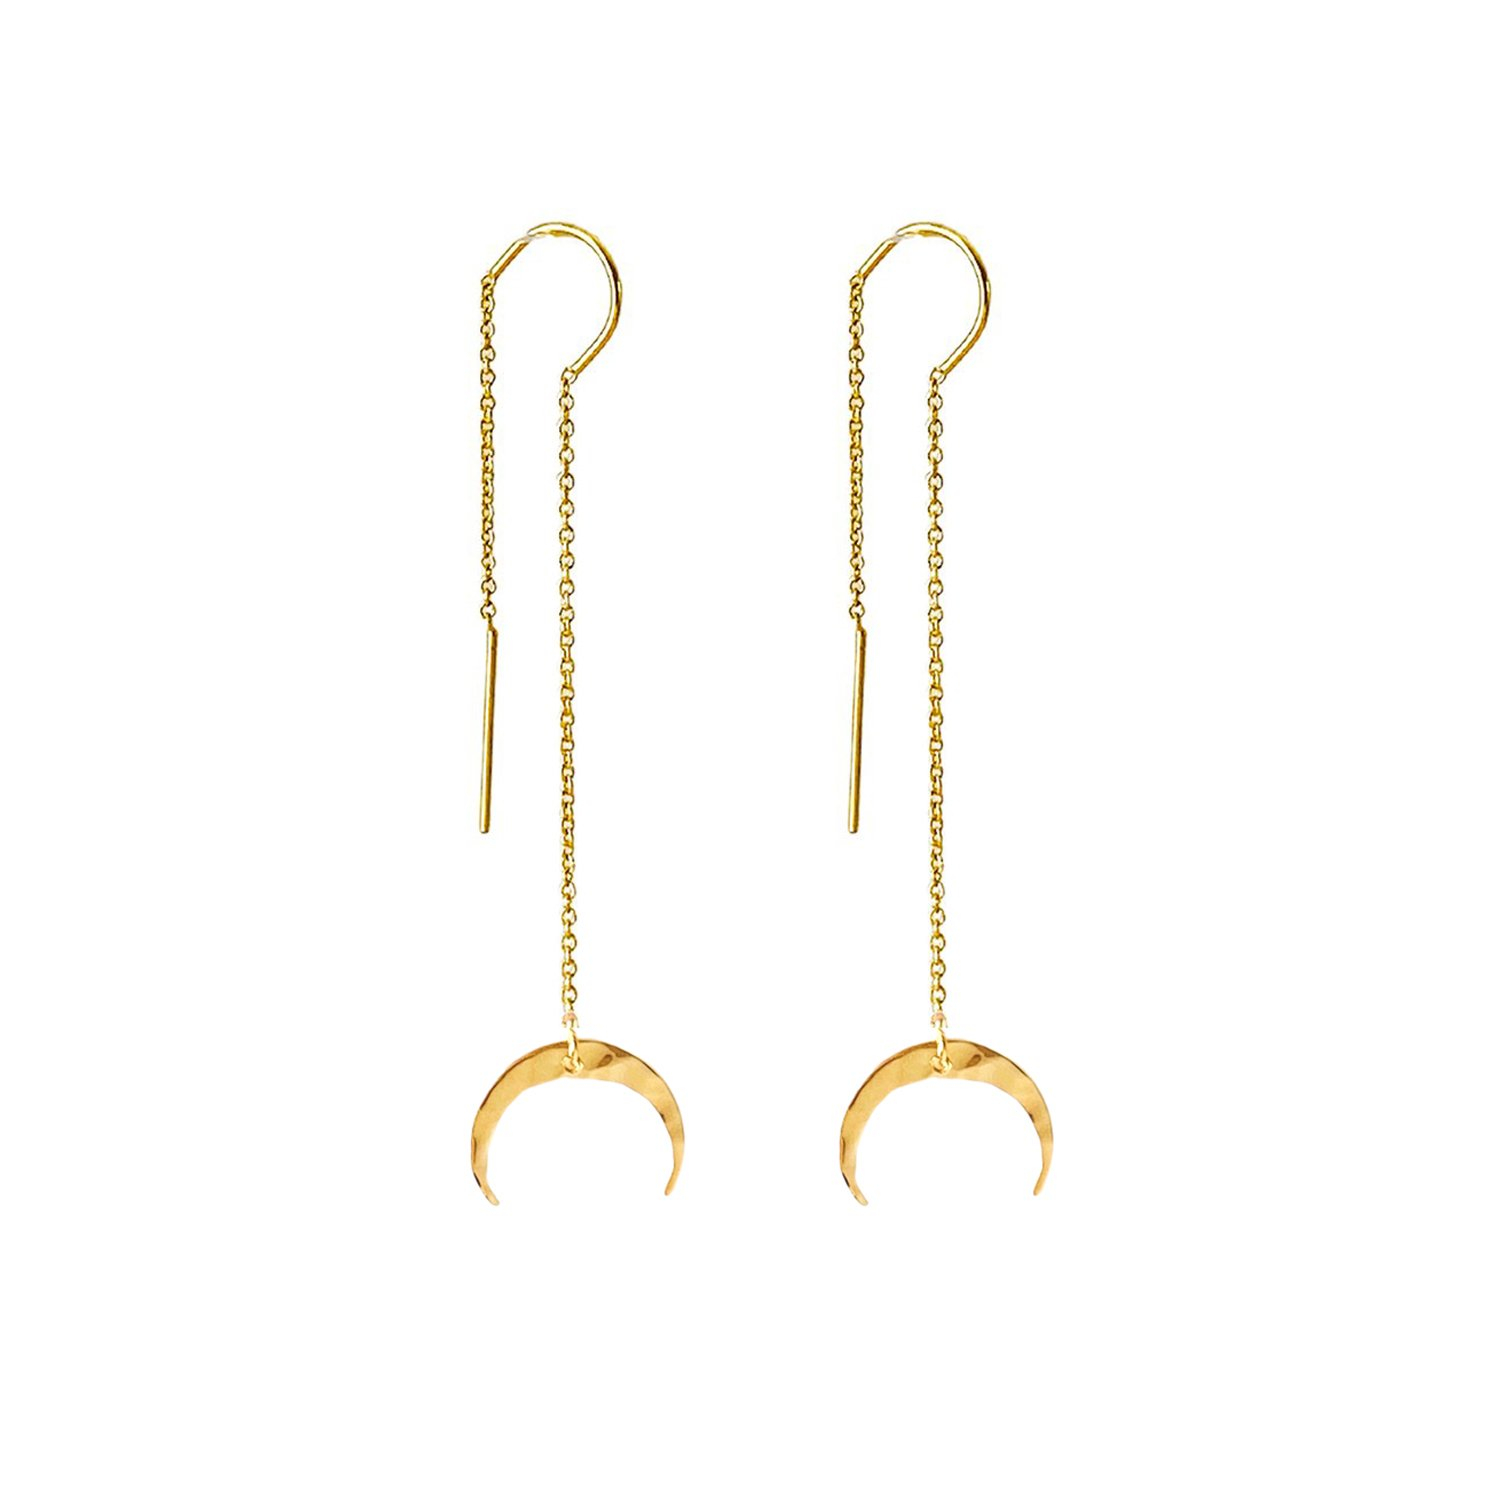 Image of Crescent Moon Threader Earrings